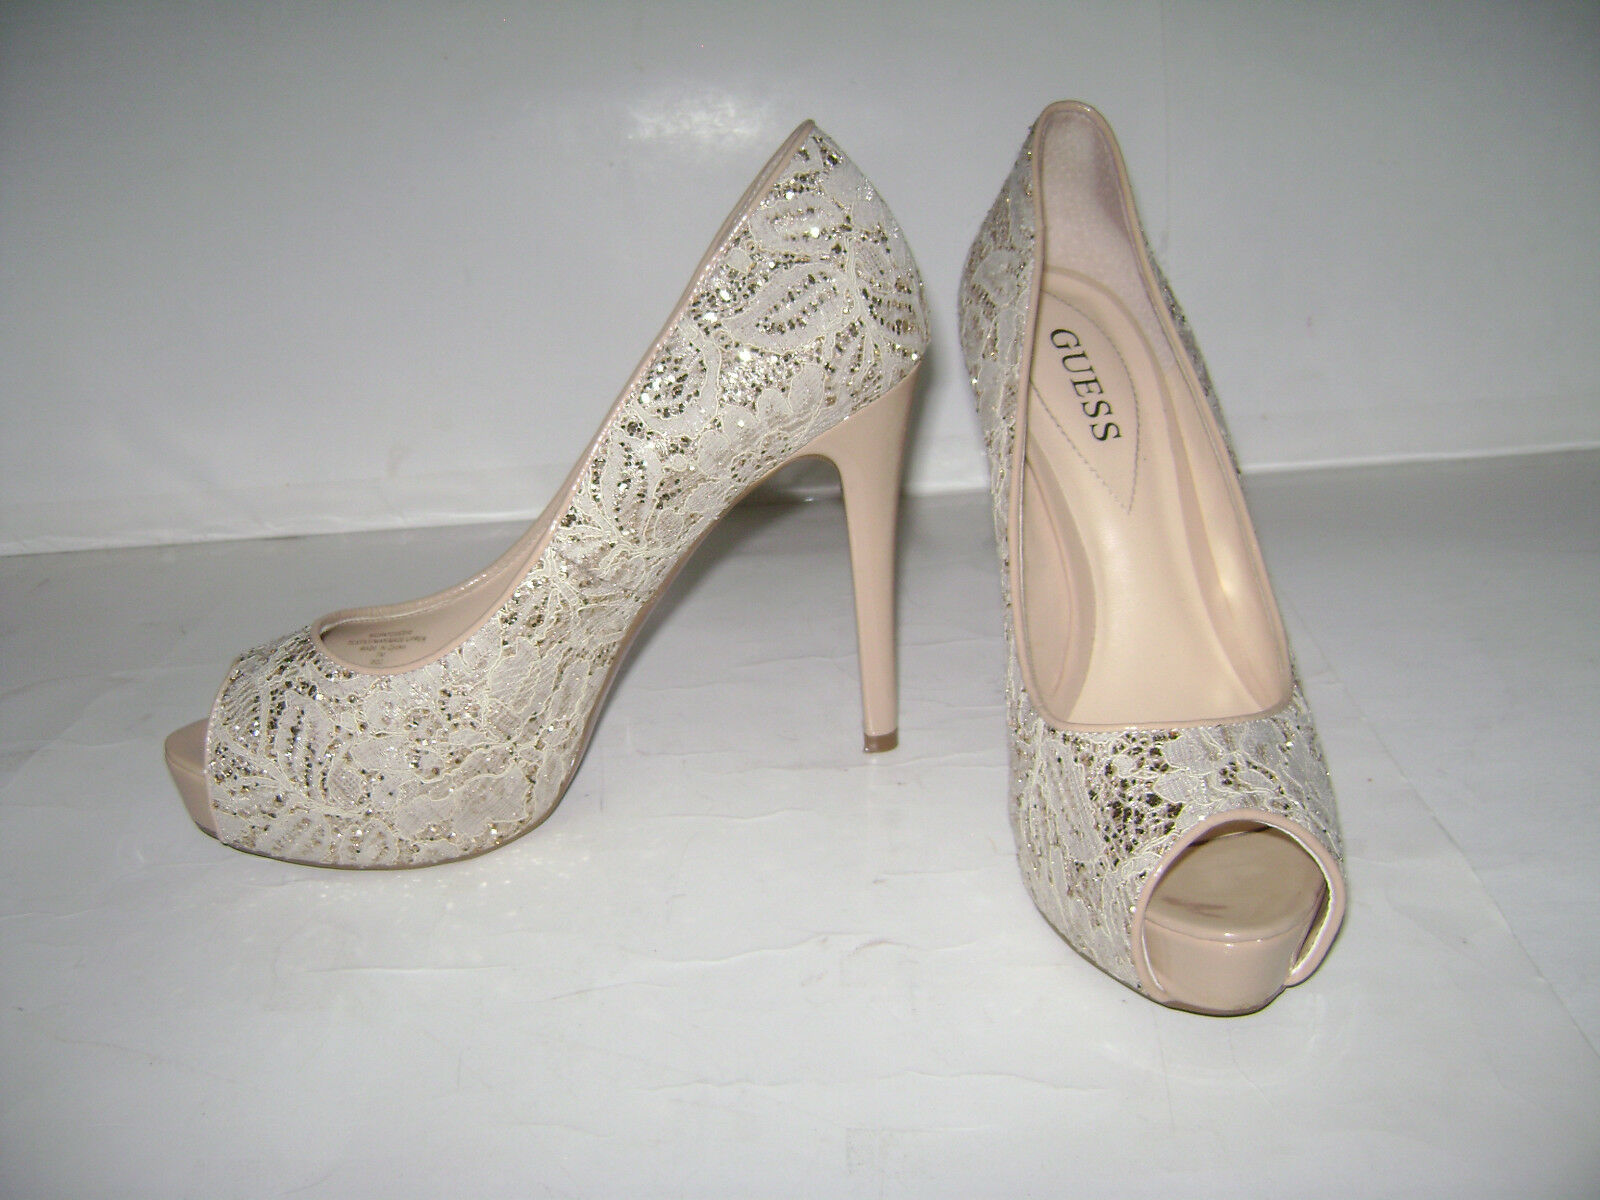 GUESS GUESS GUESS WGPATCHES10 SLIP ON schuhe Größe 7 M PUMPS HEELS SPARKLE GLITTER BEAUTIFUL 7f7733